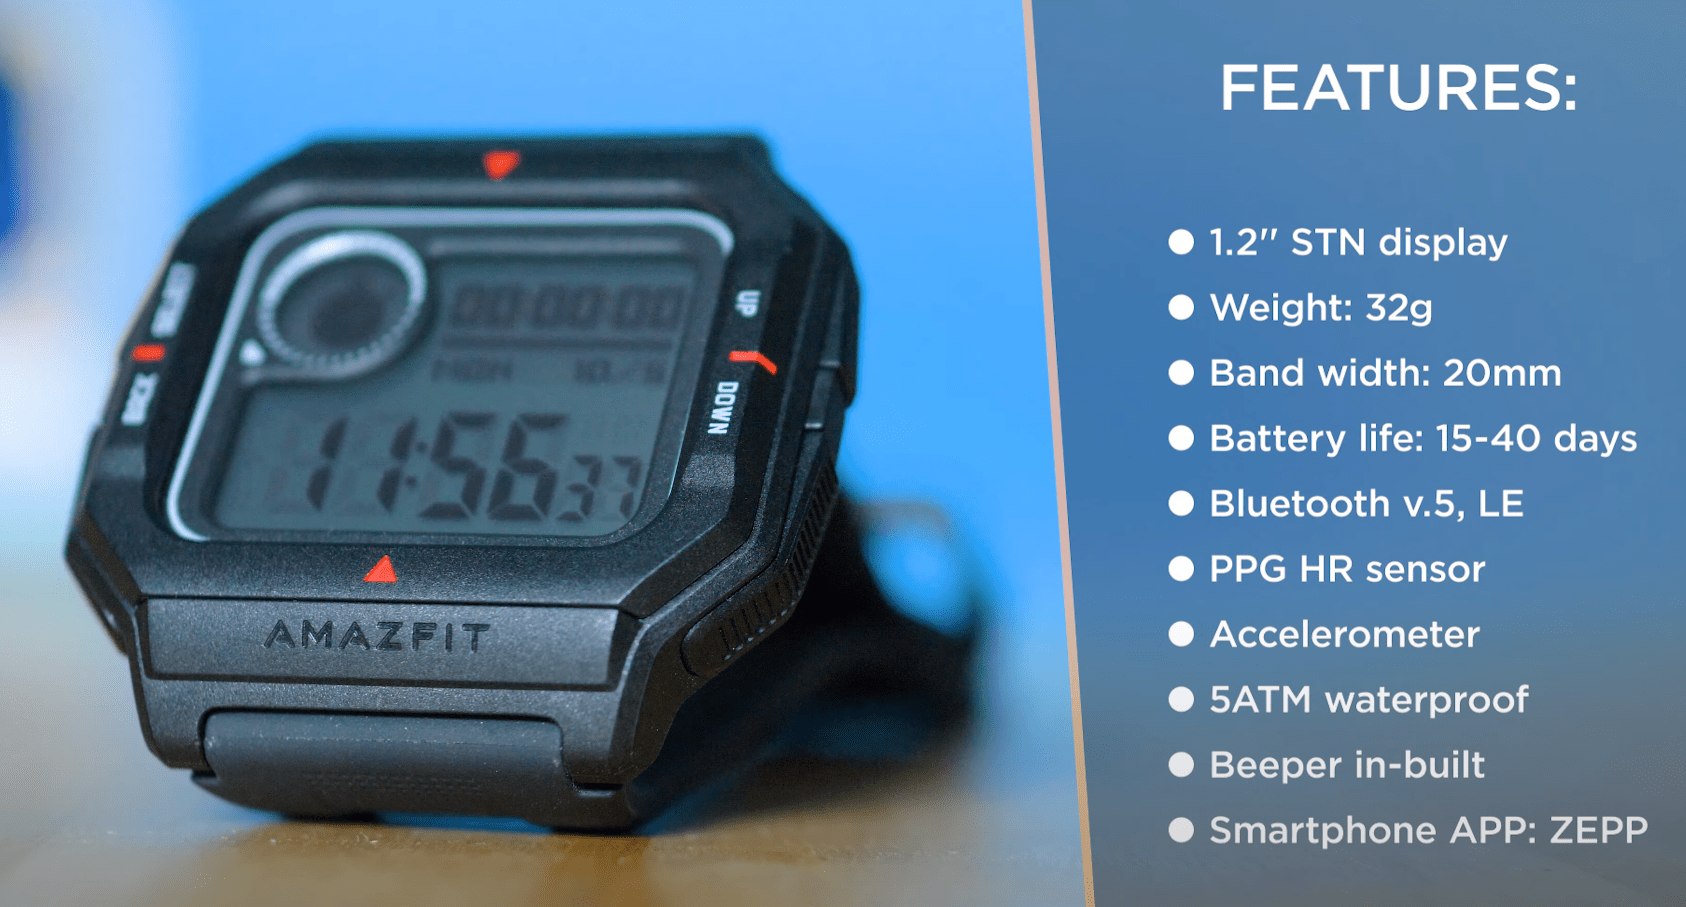 AmazFit Neo - Main Features